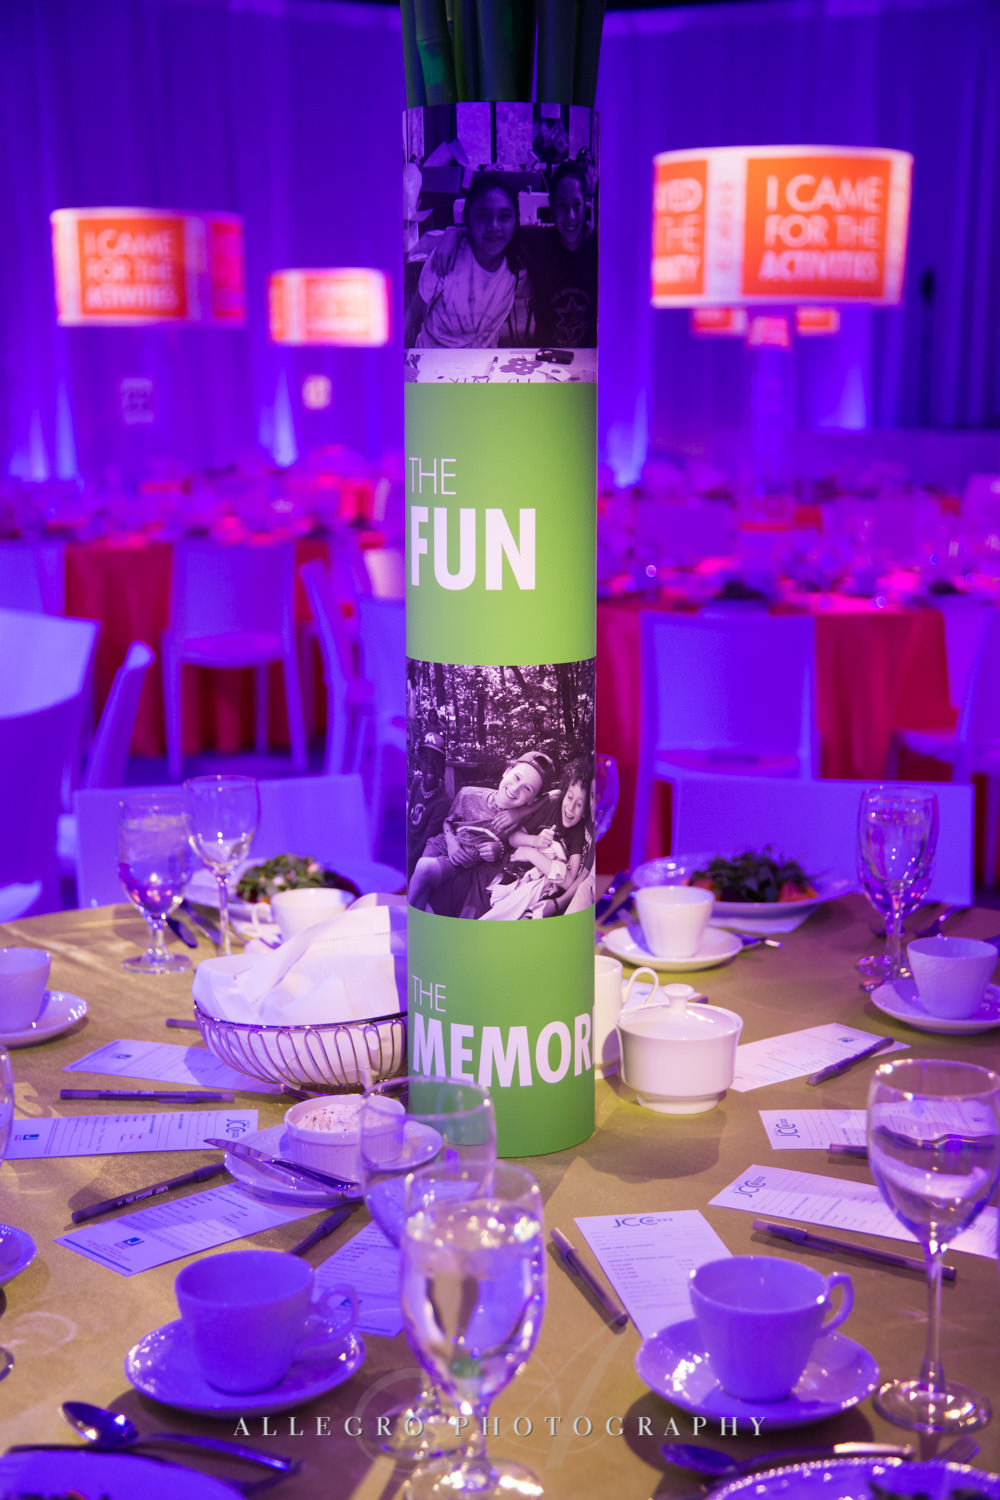 Nonprofit event photography decor shot by Allegro Photography